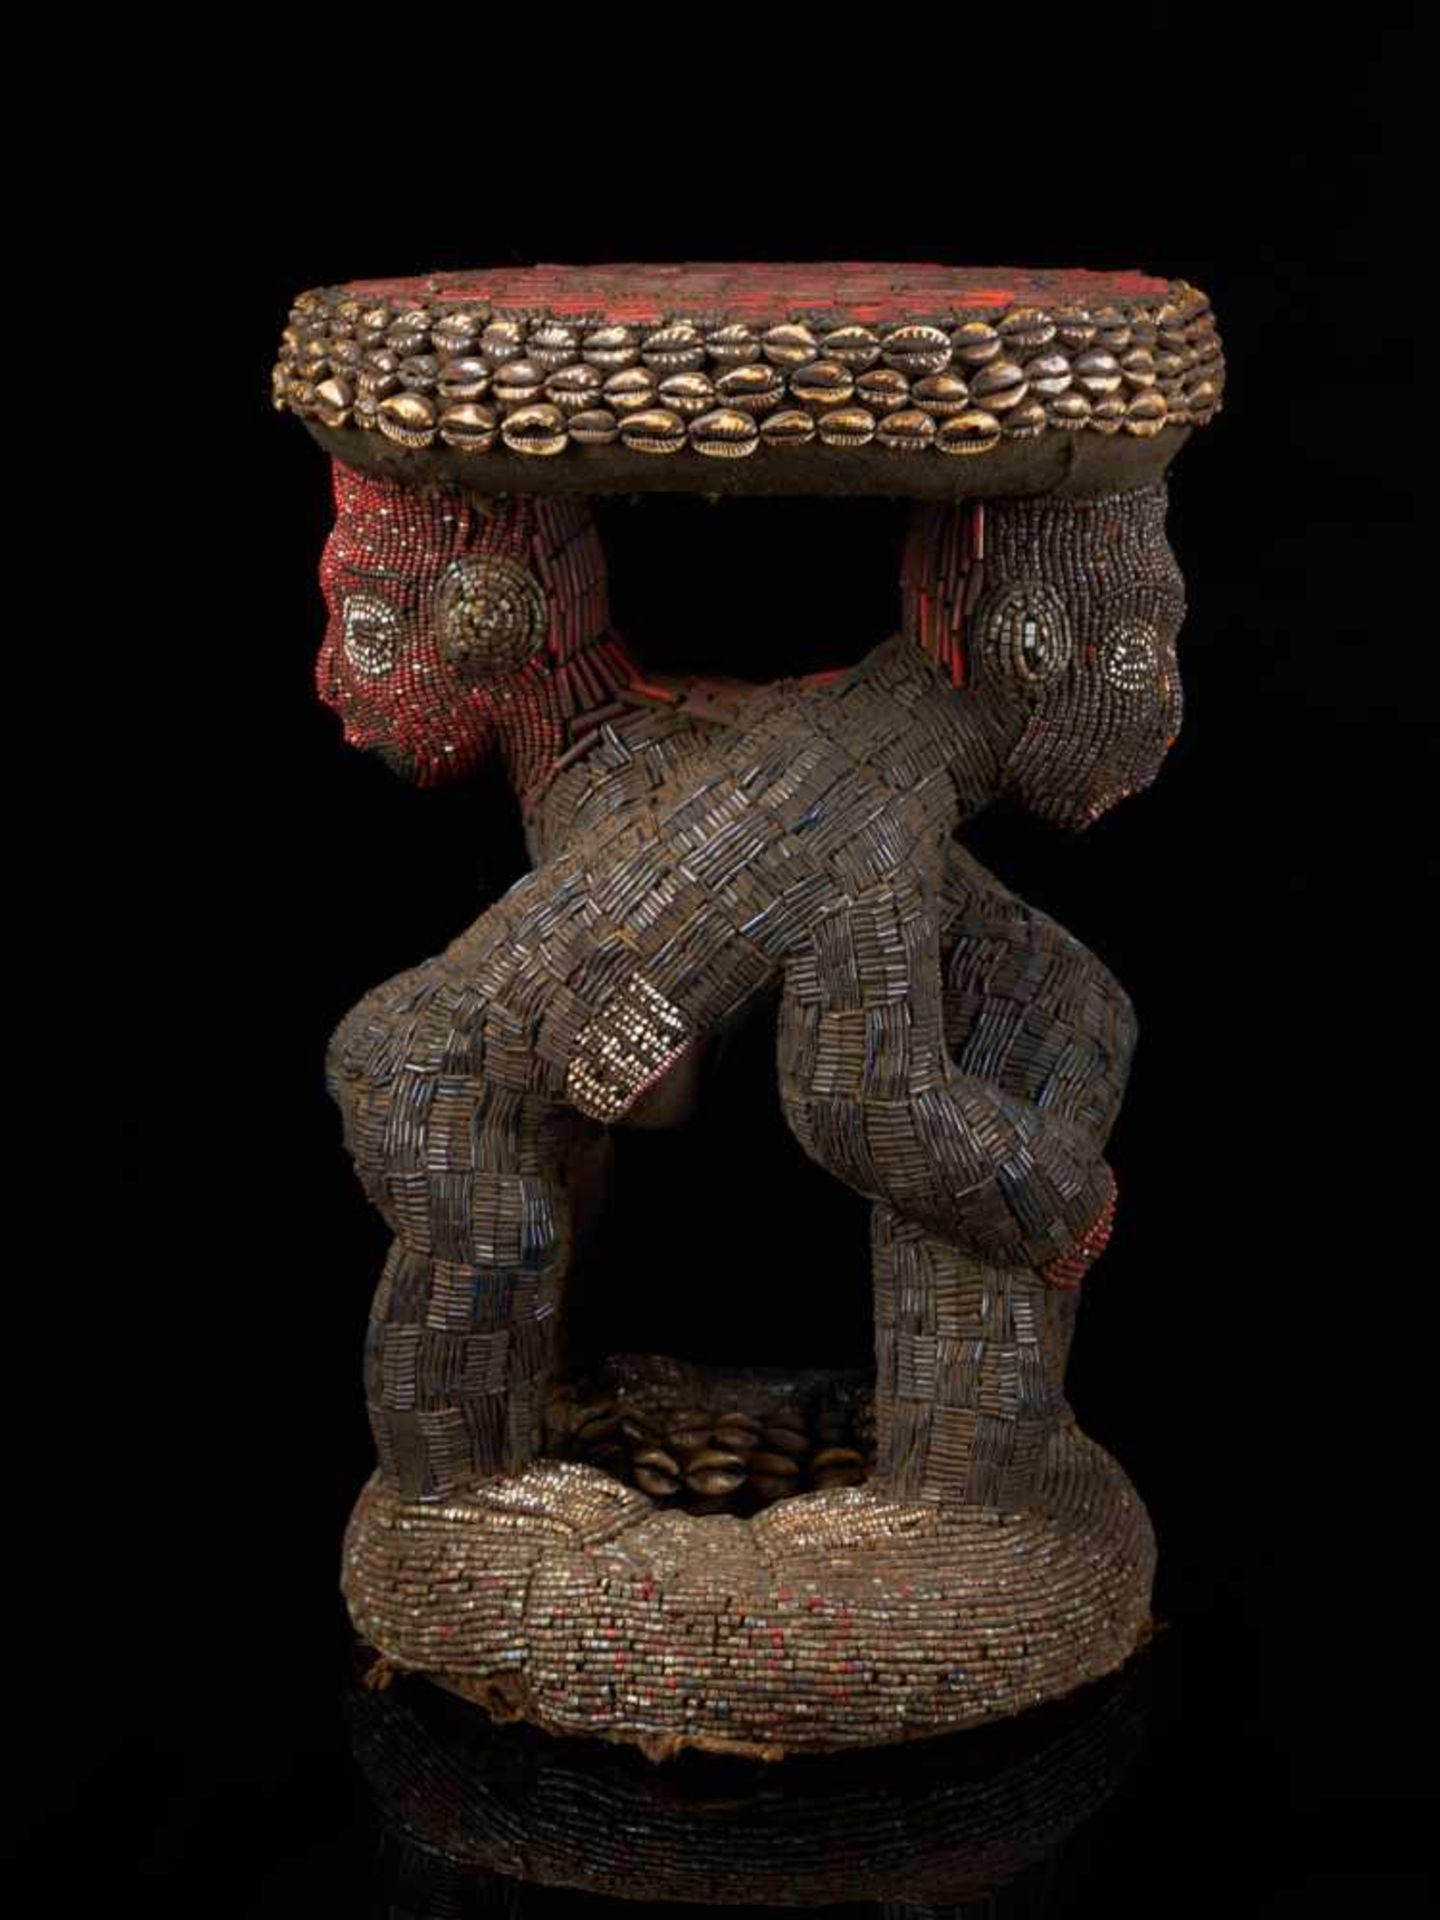 Beaded Royal Stool Supported By Two Figures - Tribal ArtThis exquisite stool has a round base and - Bild 2 aus 5